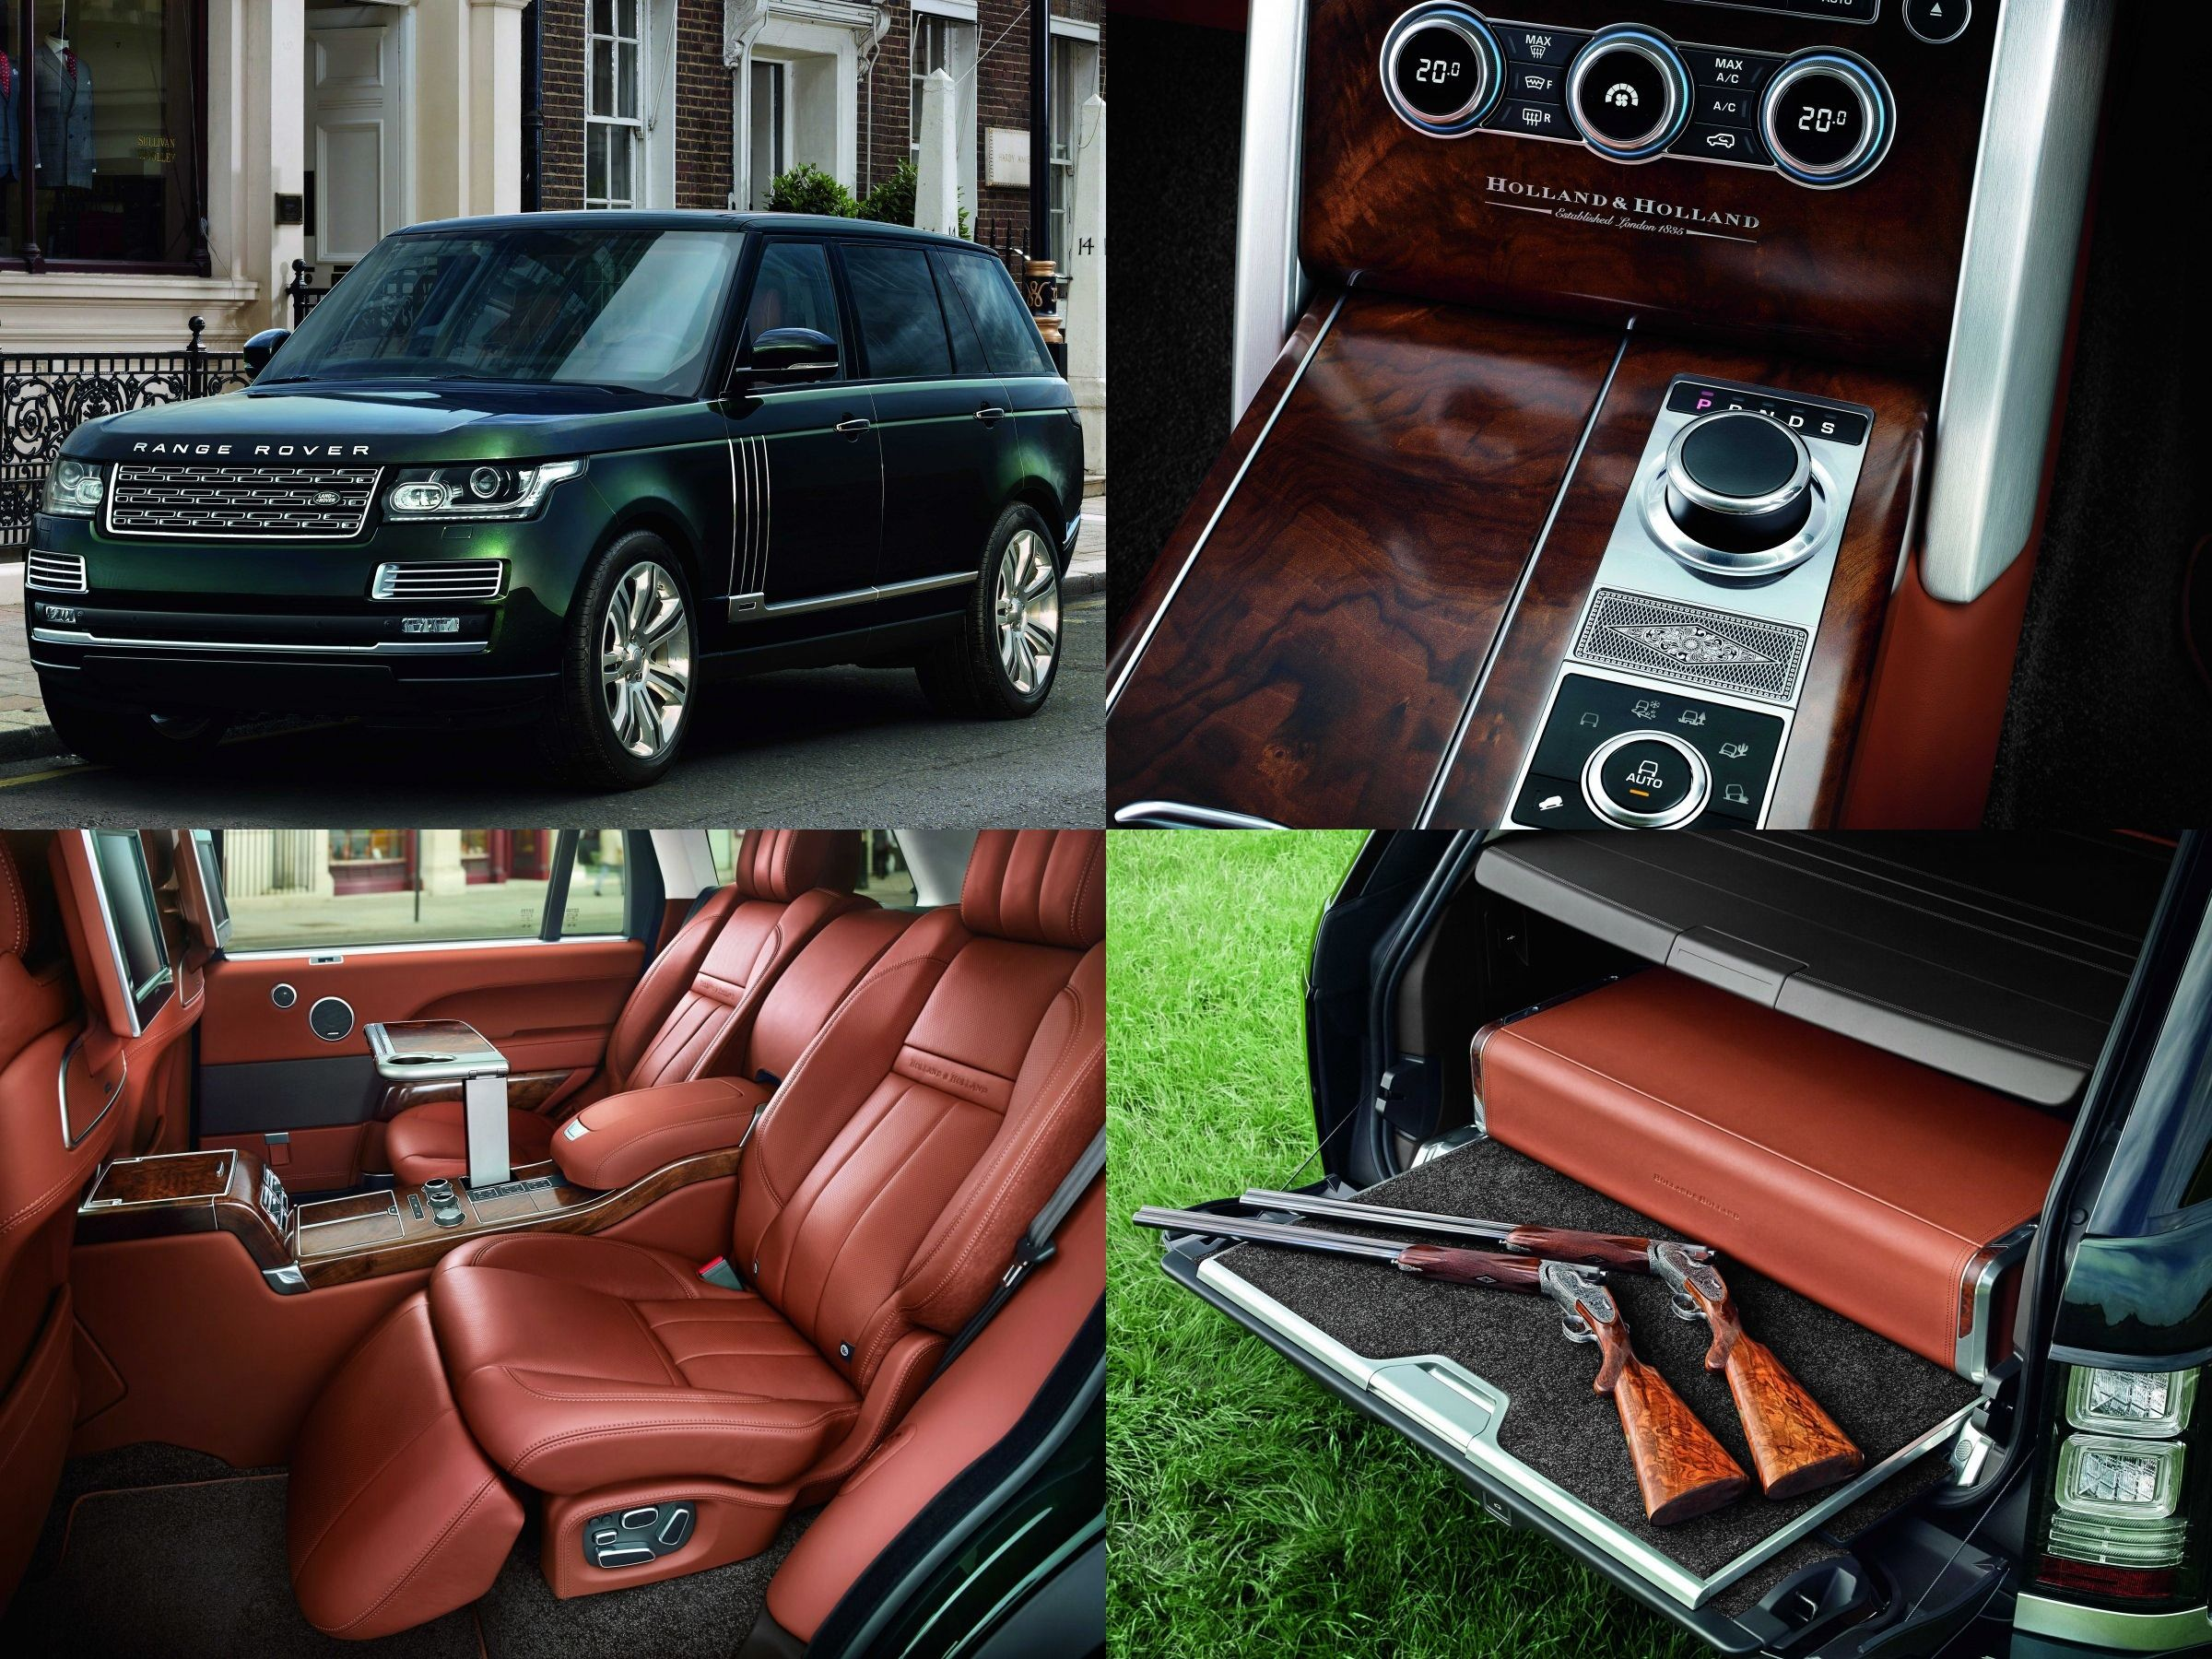 Range Rover Holland Holland Range Rover Supercharged Range Rover New Cars